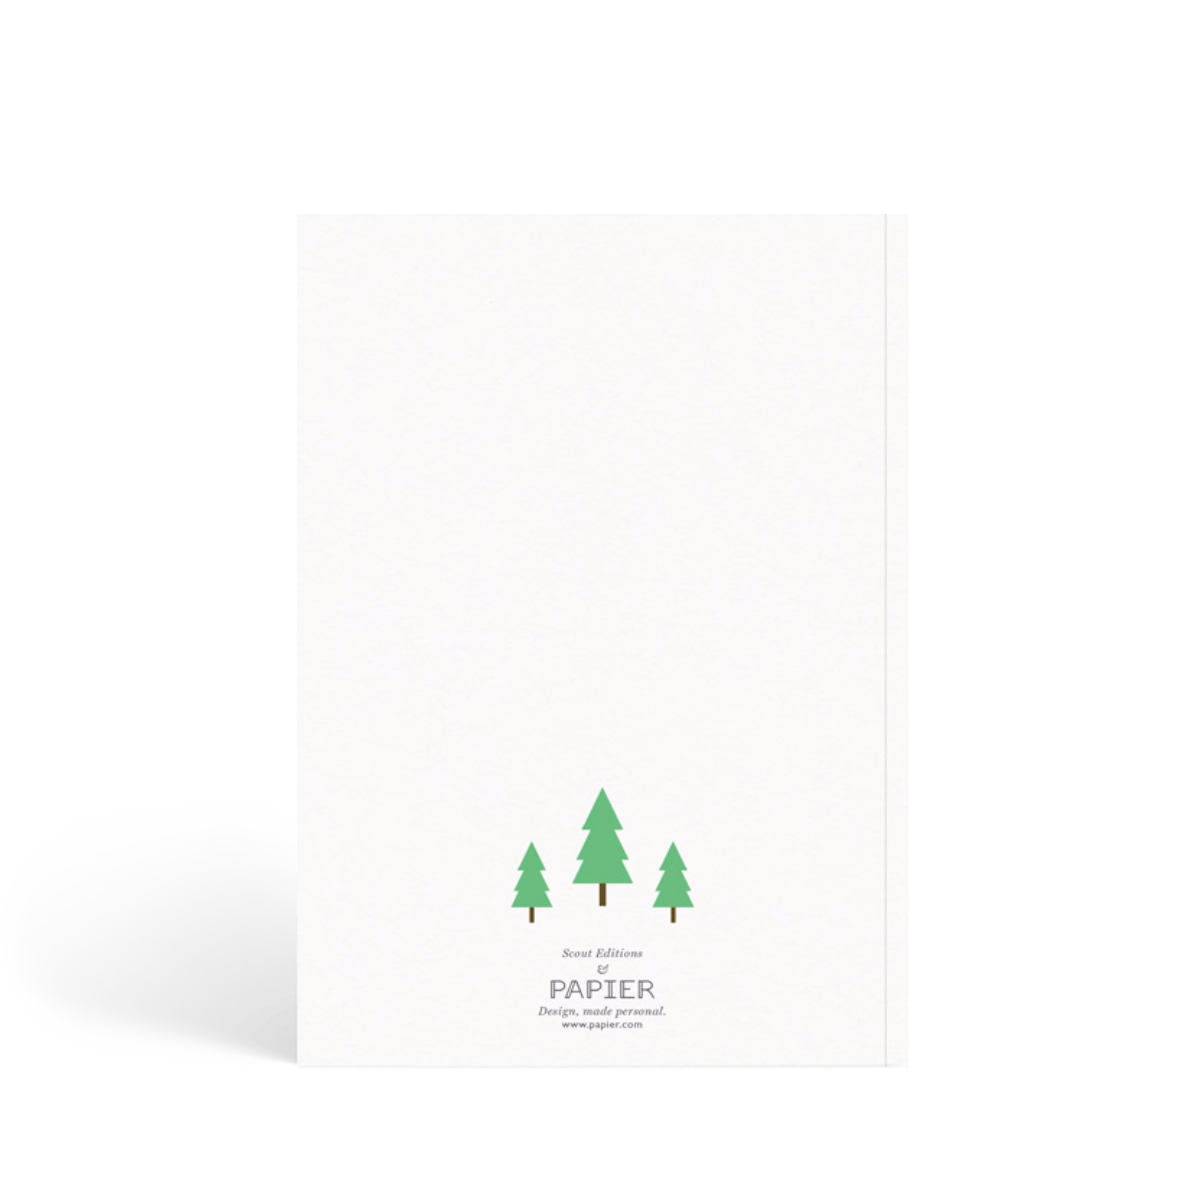 Https%3a%2f%2fwww.papier.com%2fproduct image%2f6116%2f5%2ftreehouse 1591 arriere 1461083993.png?ixlib=rb 1.1